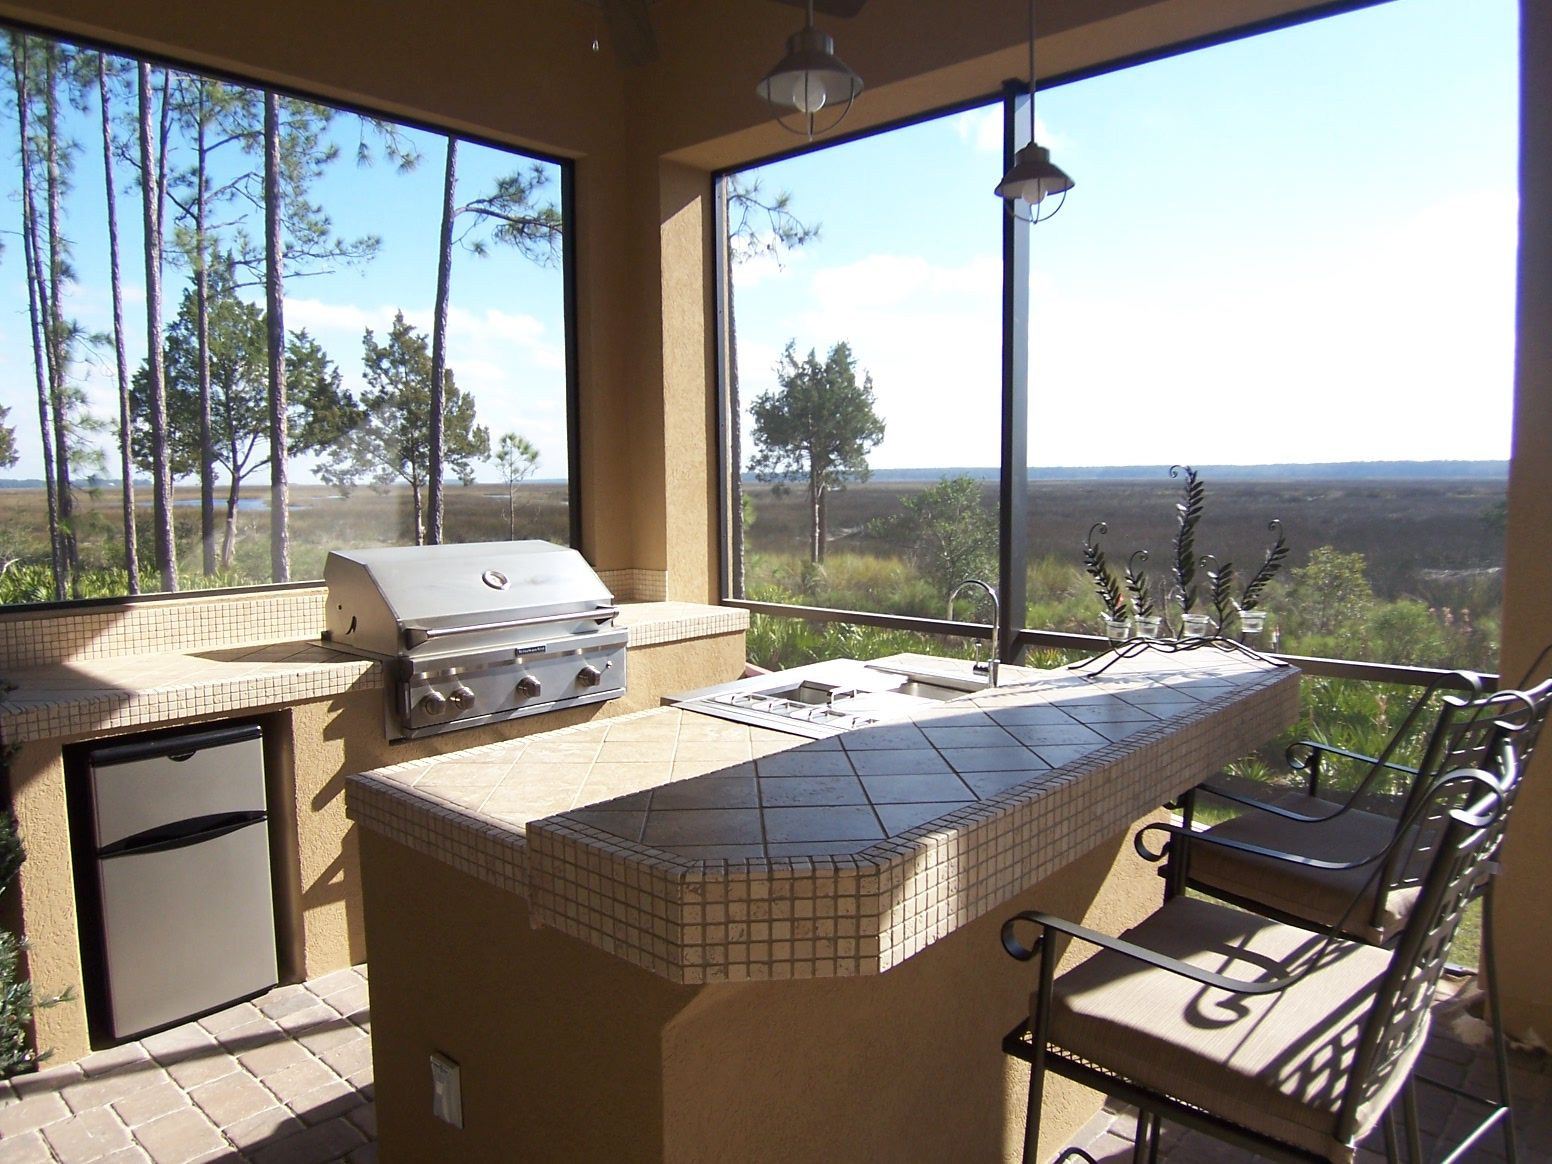 Outdoor Kitchen Amp Bar Area Site Built Covered In Stucco